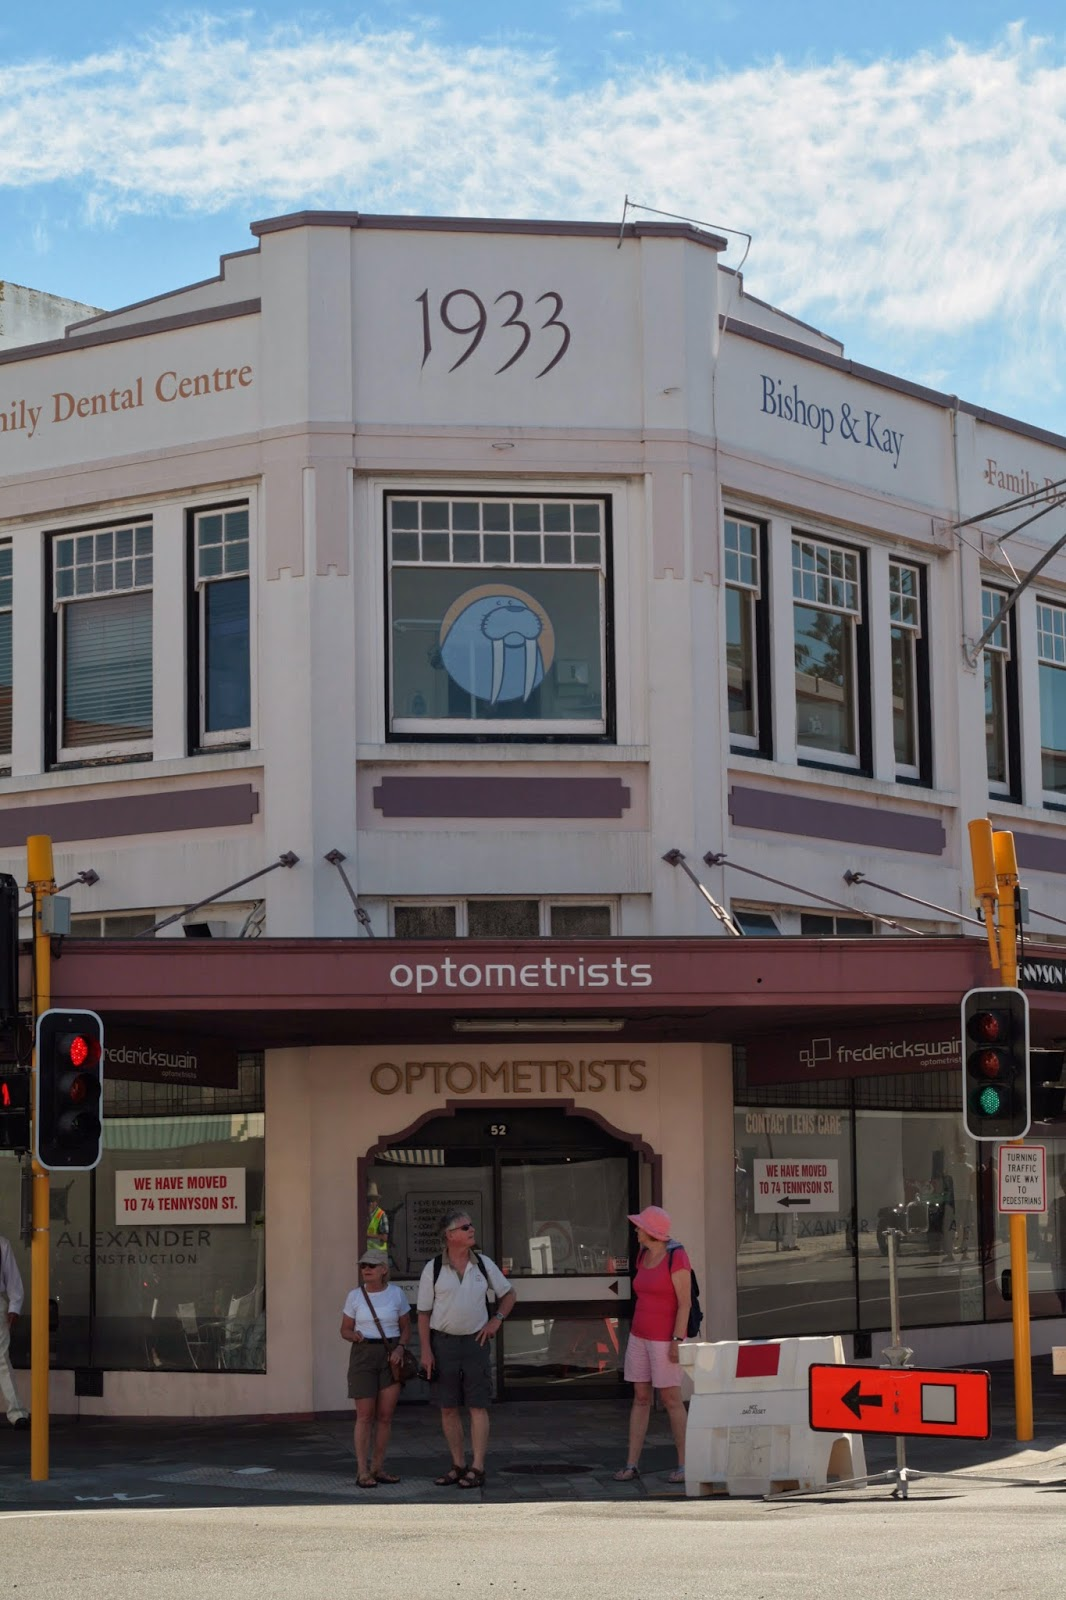 Art deco building from 1933 in Napier New Zealand.